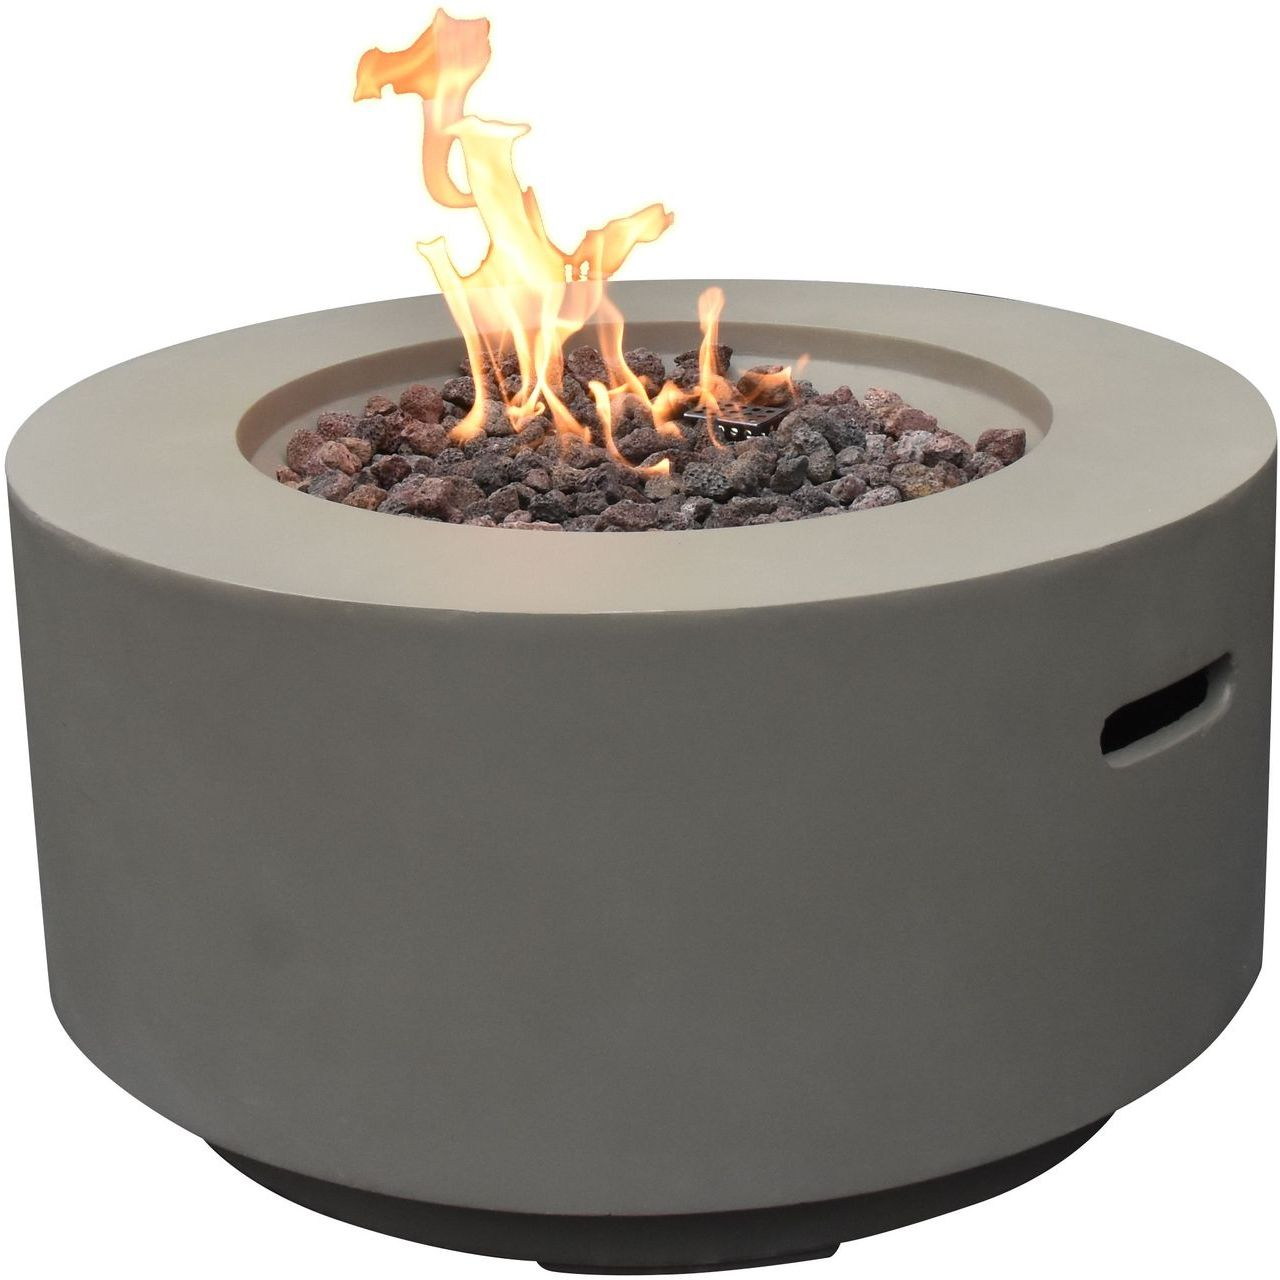 Modeno OFG152LG-LP Waterford Fire Table in Light  Gray - Propane